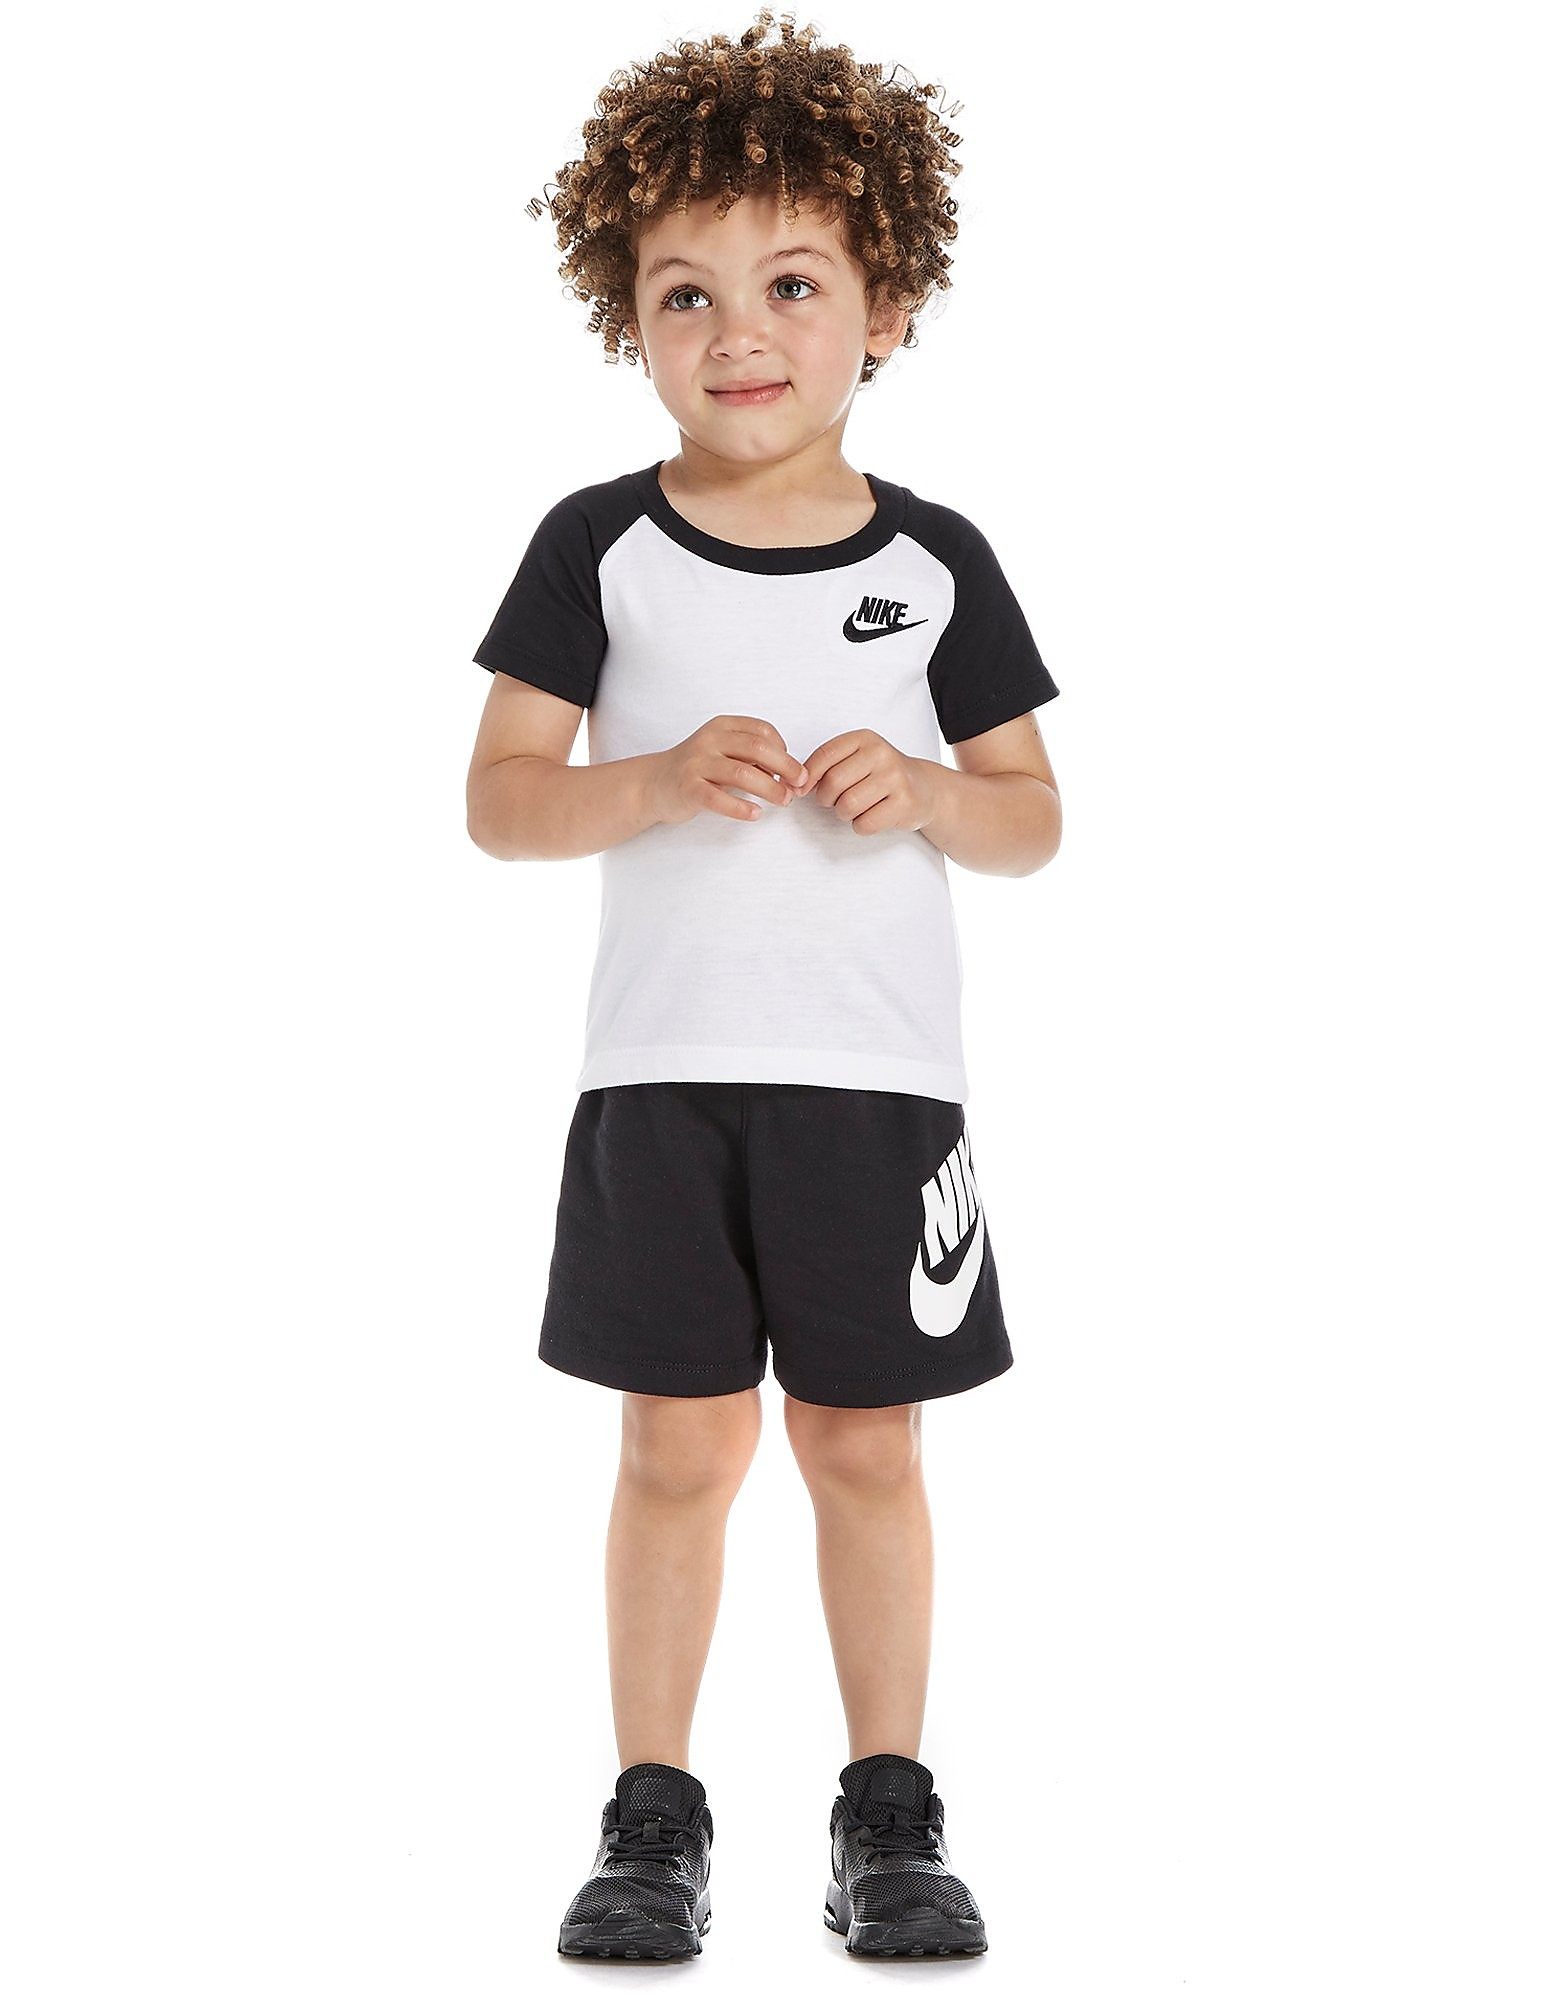 Nike Sportswear T-Shirt + Shorts Set Infant